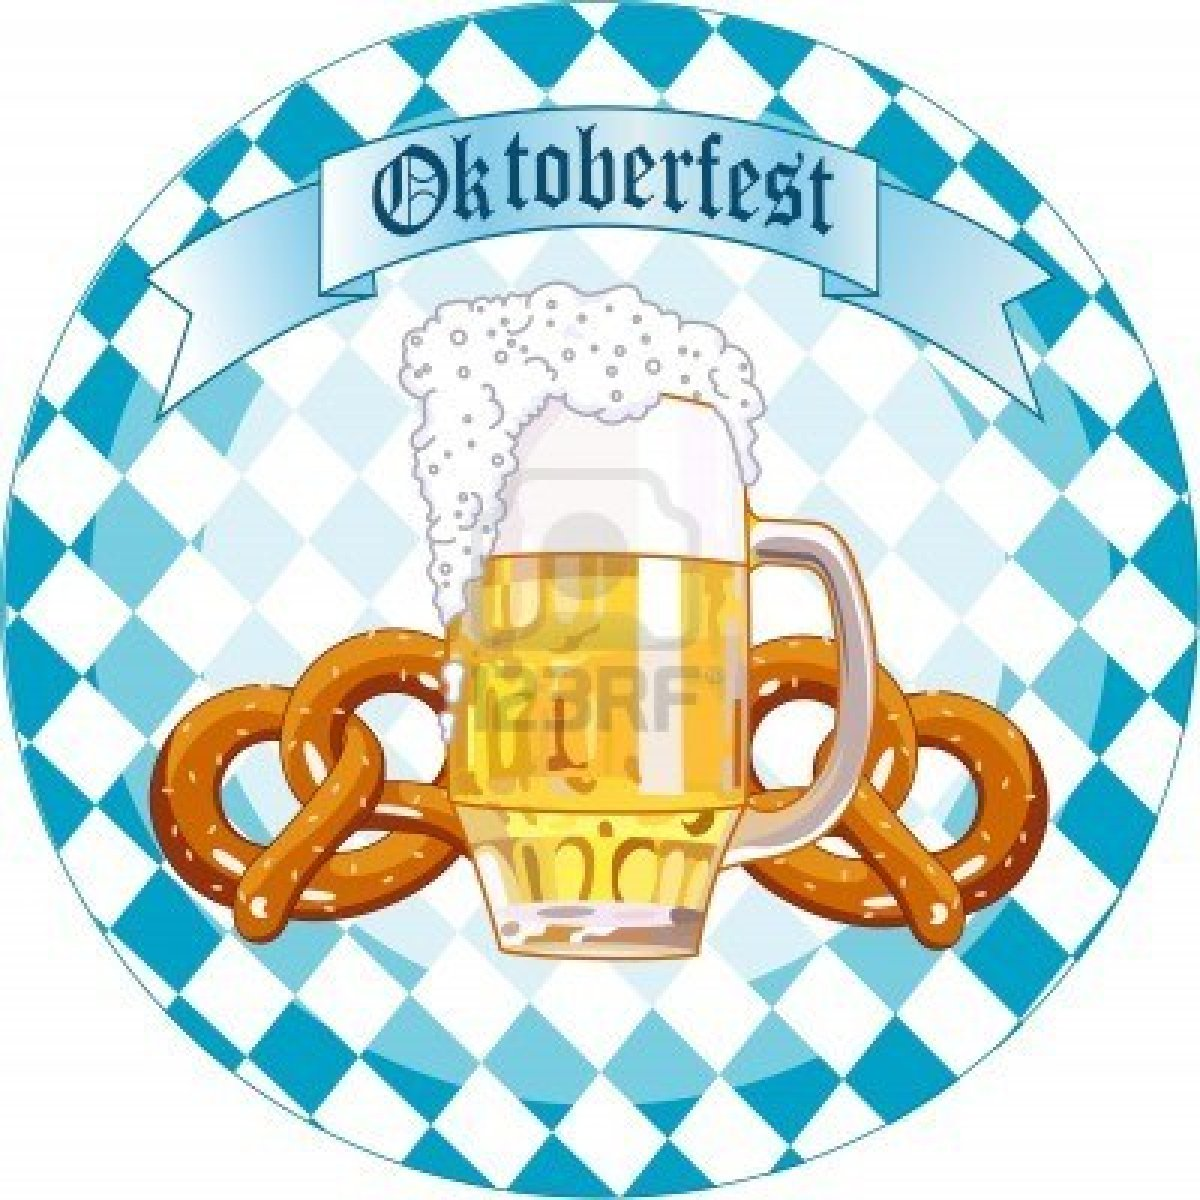 Und Design travel to europe octoberfest 2013